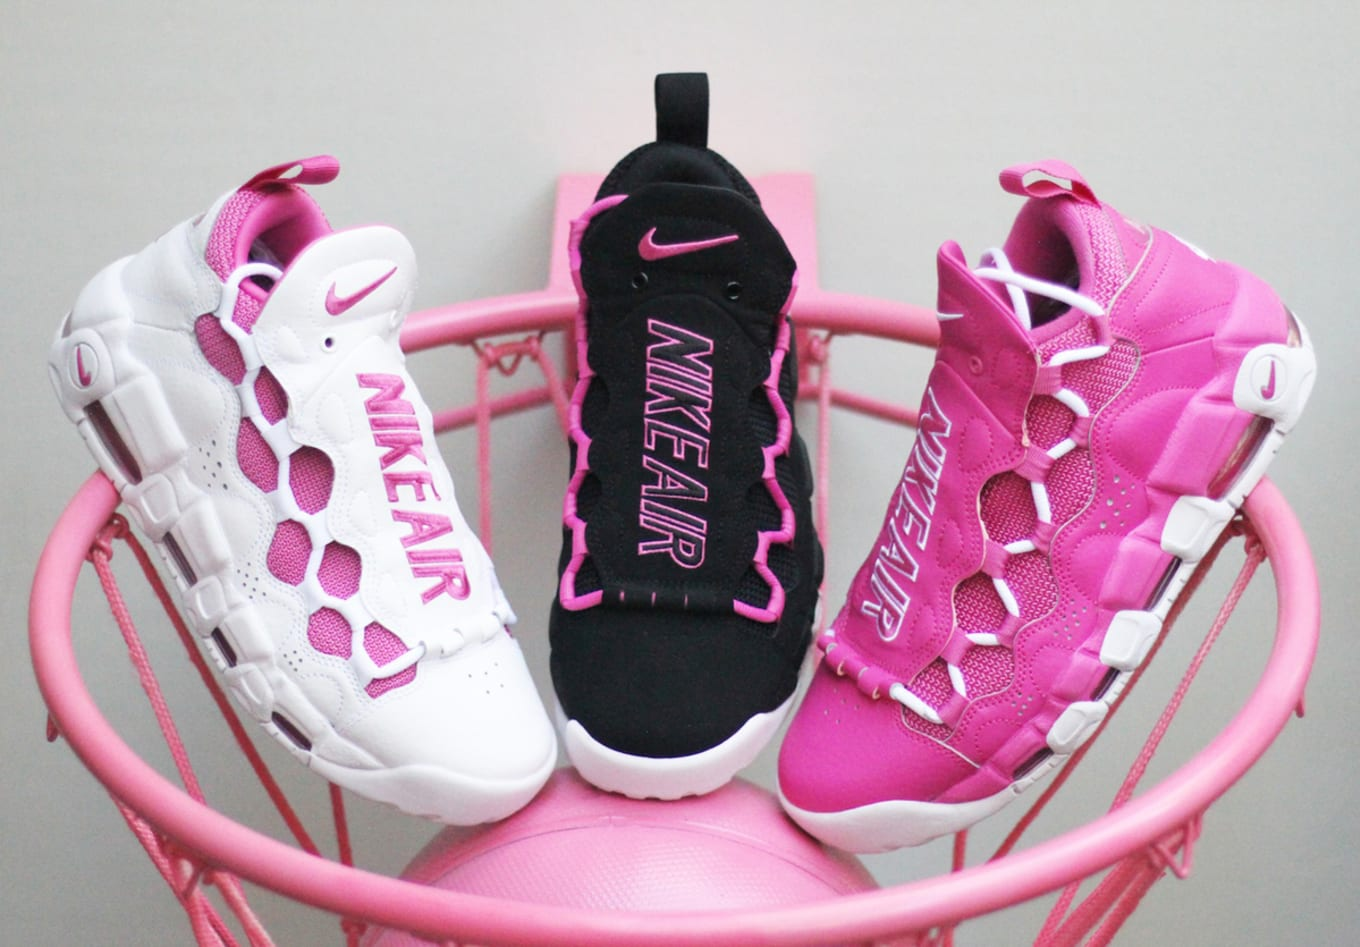 1dbd6b6fc3386 Reggie Miller s Nikes Return for Breast Cancer Awareness Release